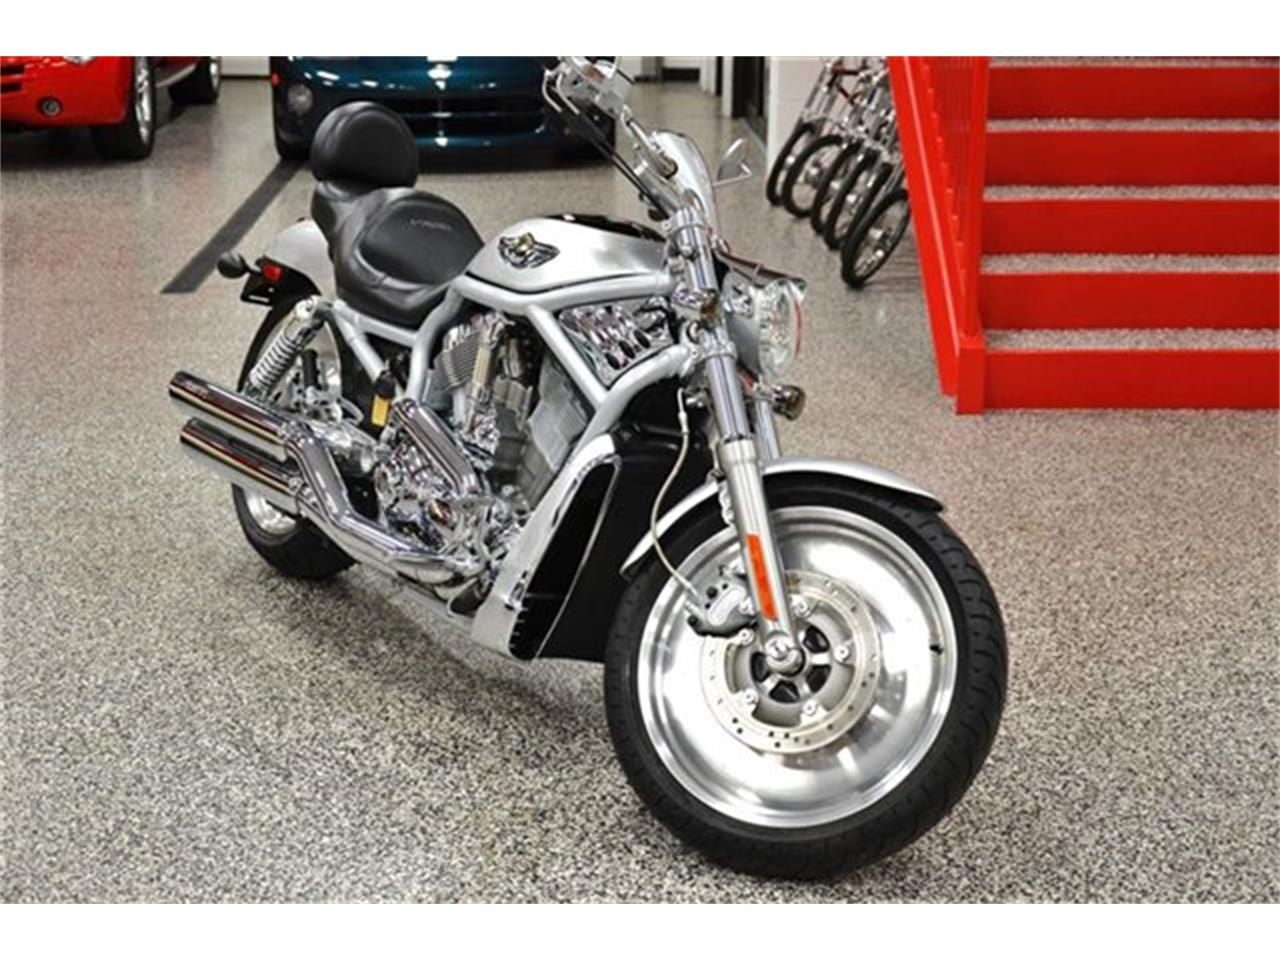 2003 Harley-Davidson VRSC for sale in Plainfield, IL – photo 35